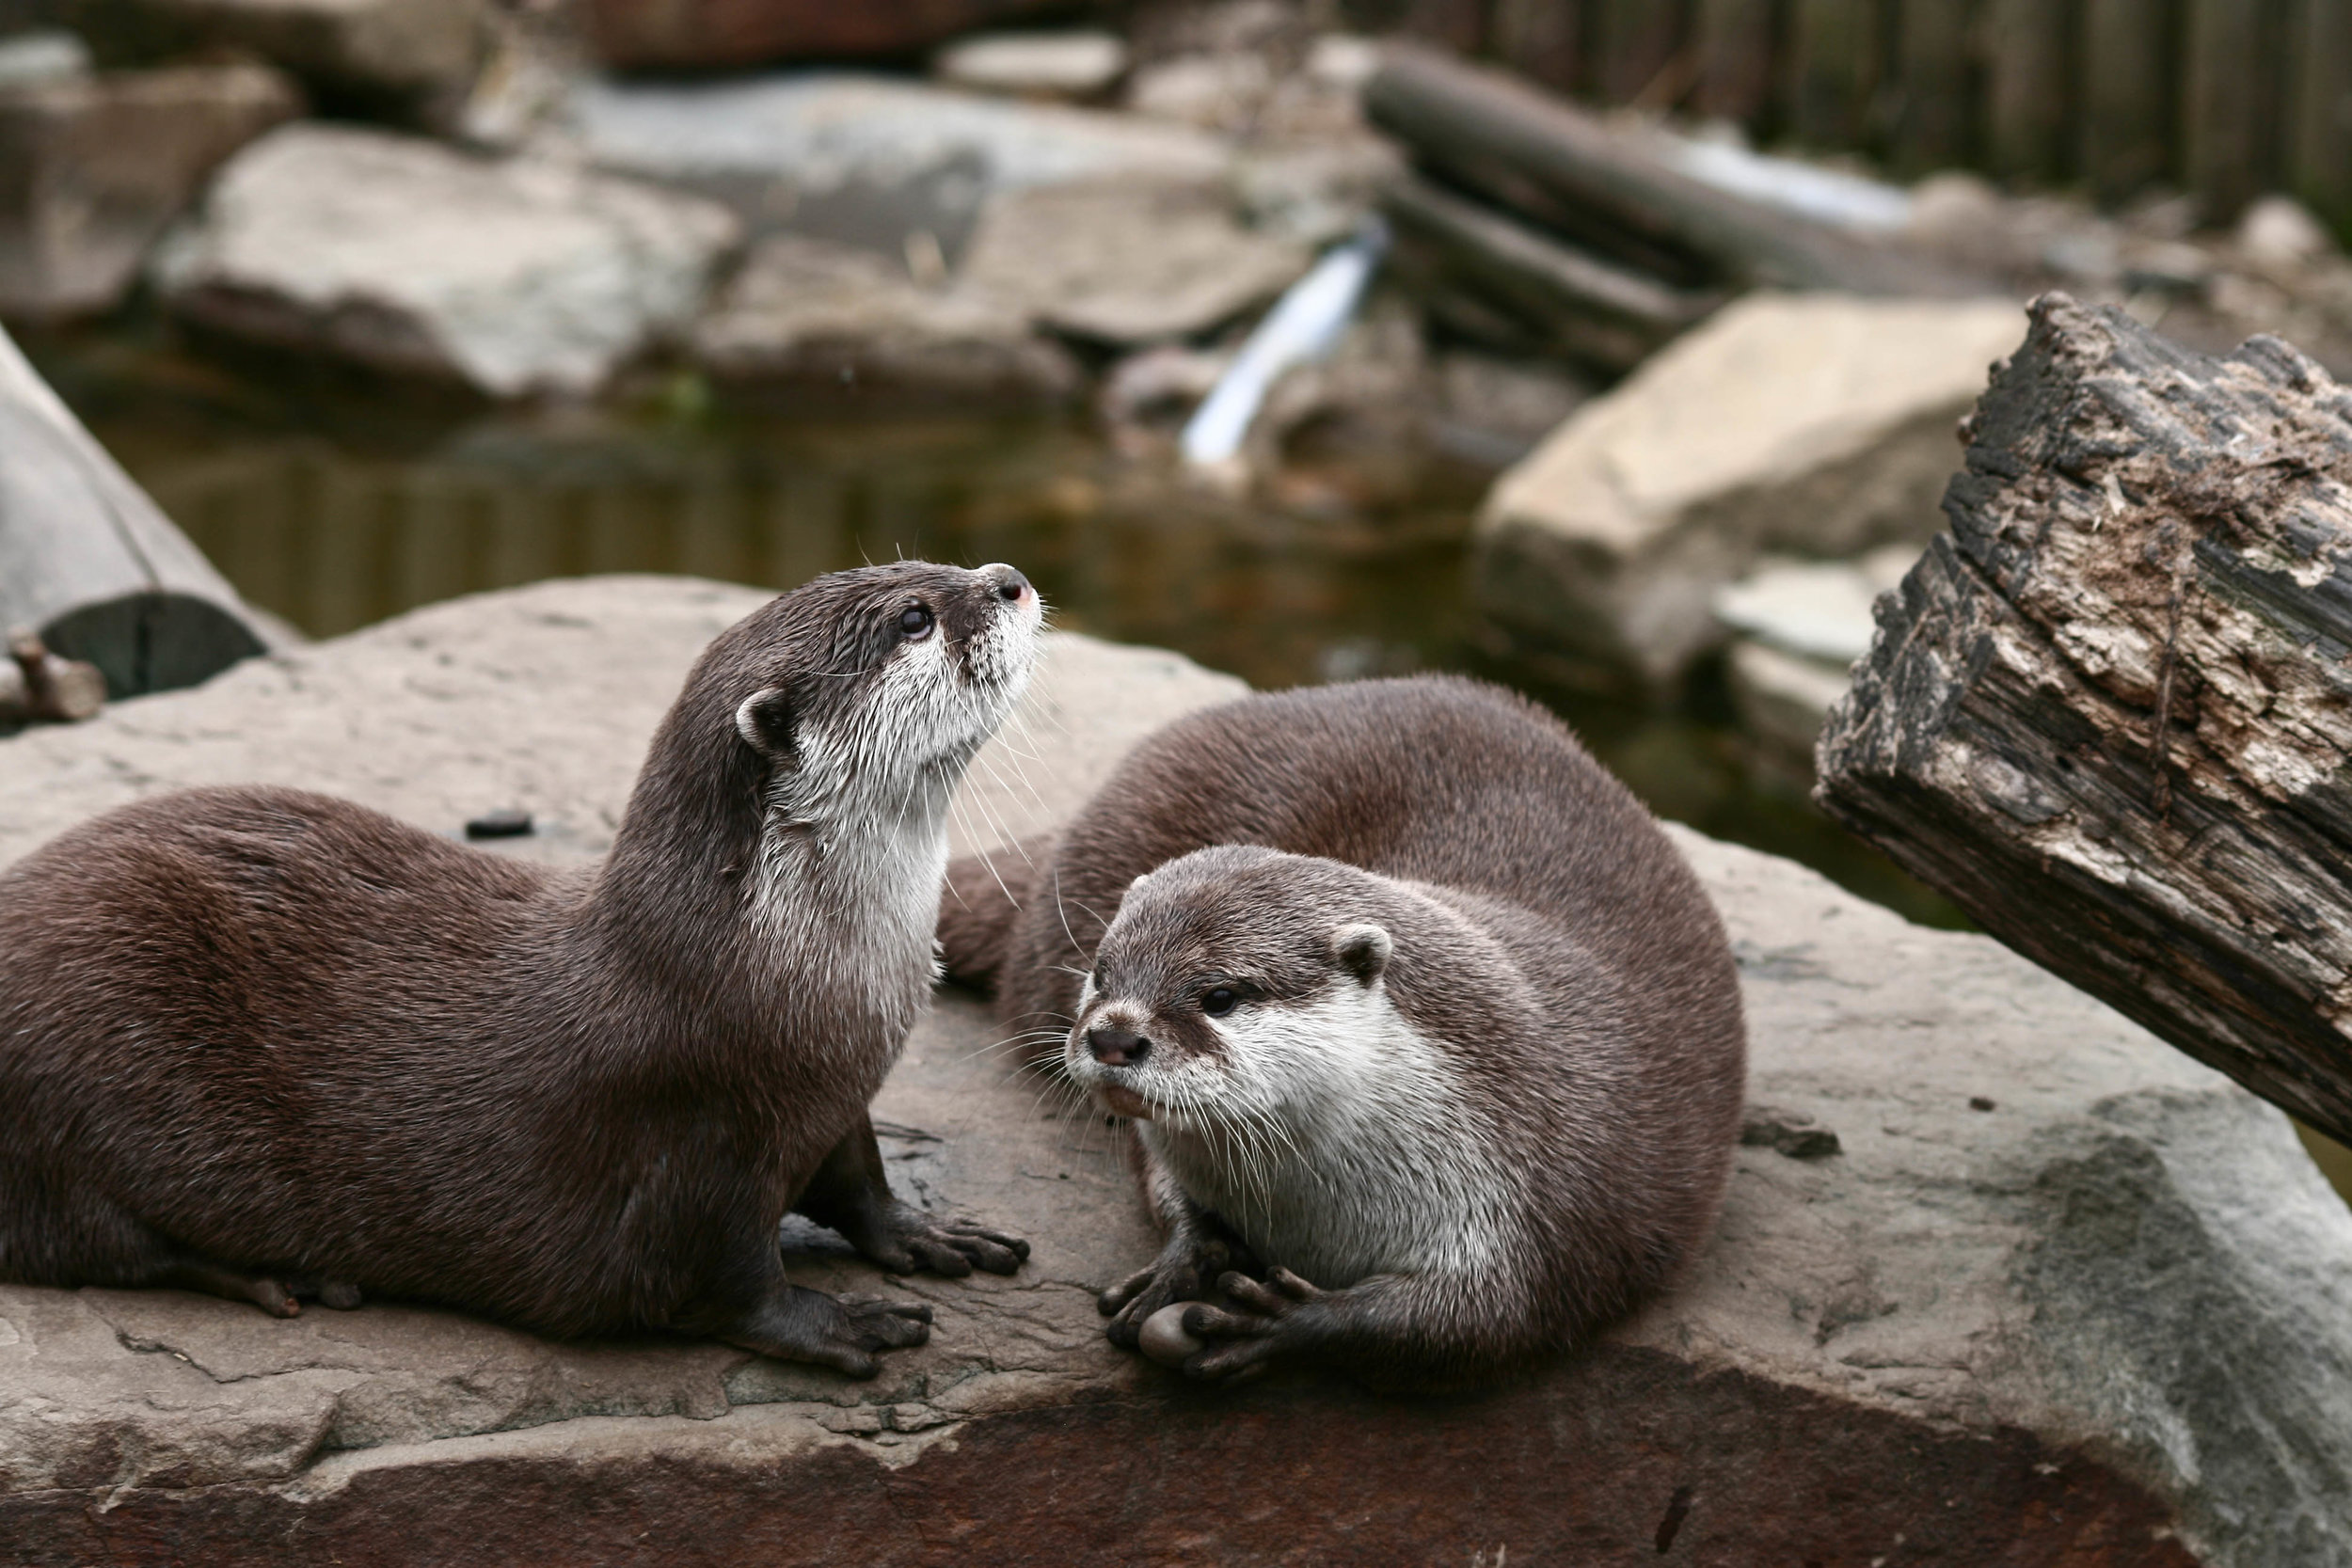 Otter Absentmindedly Holds a Stone